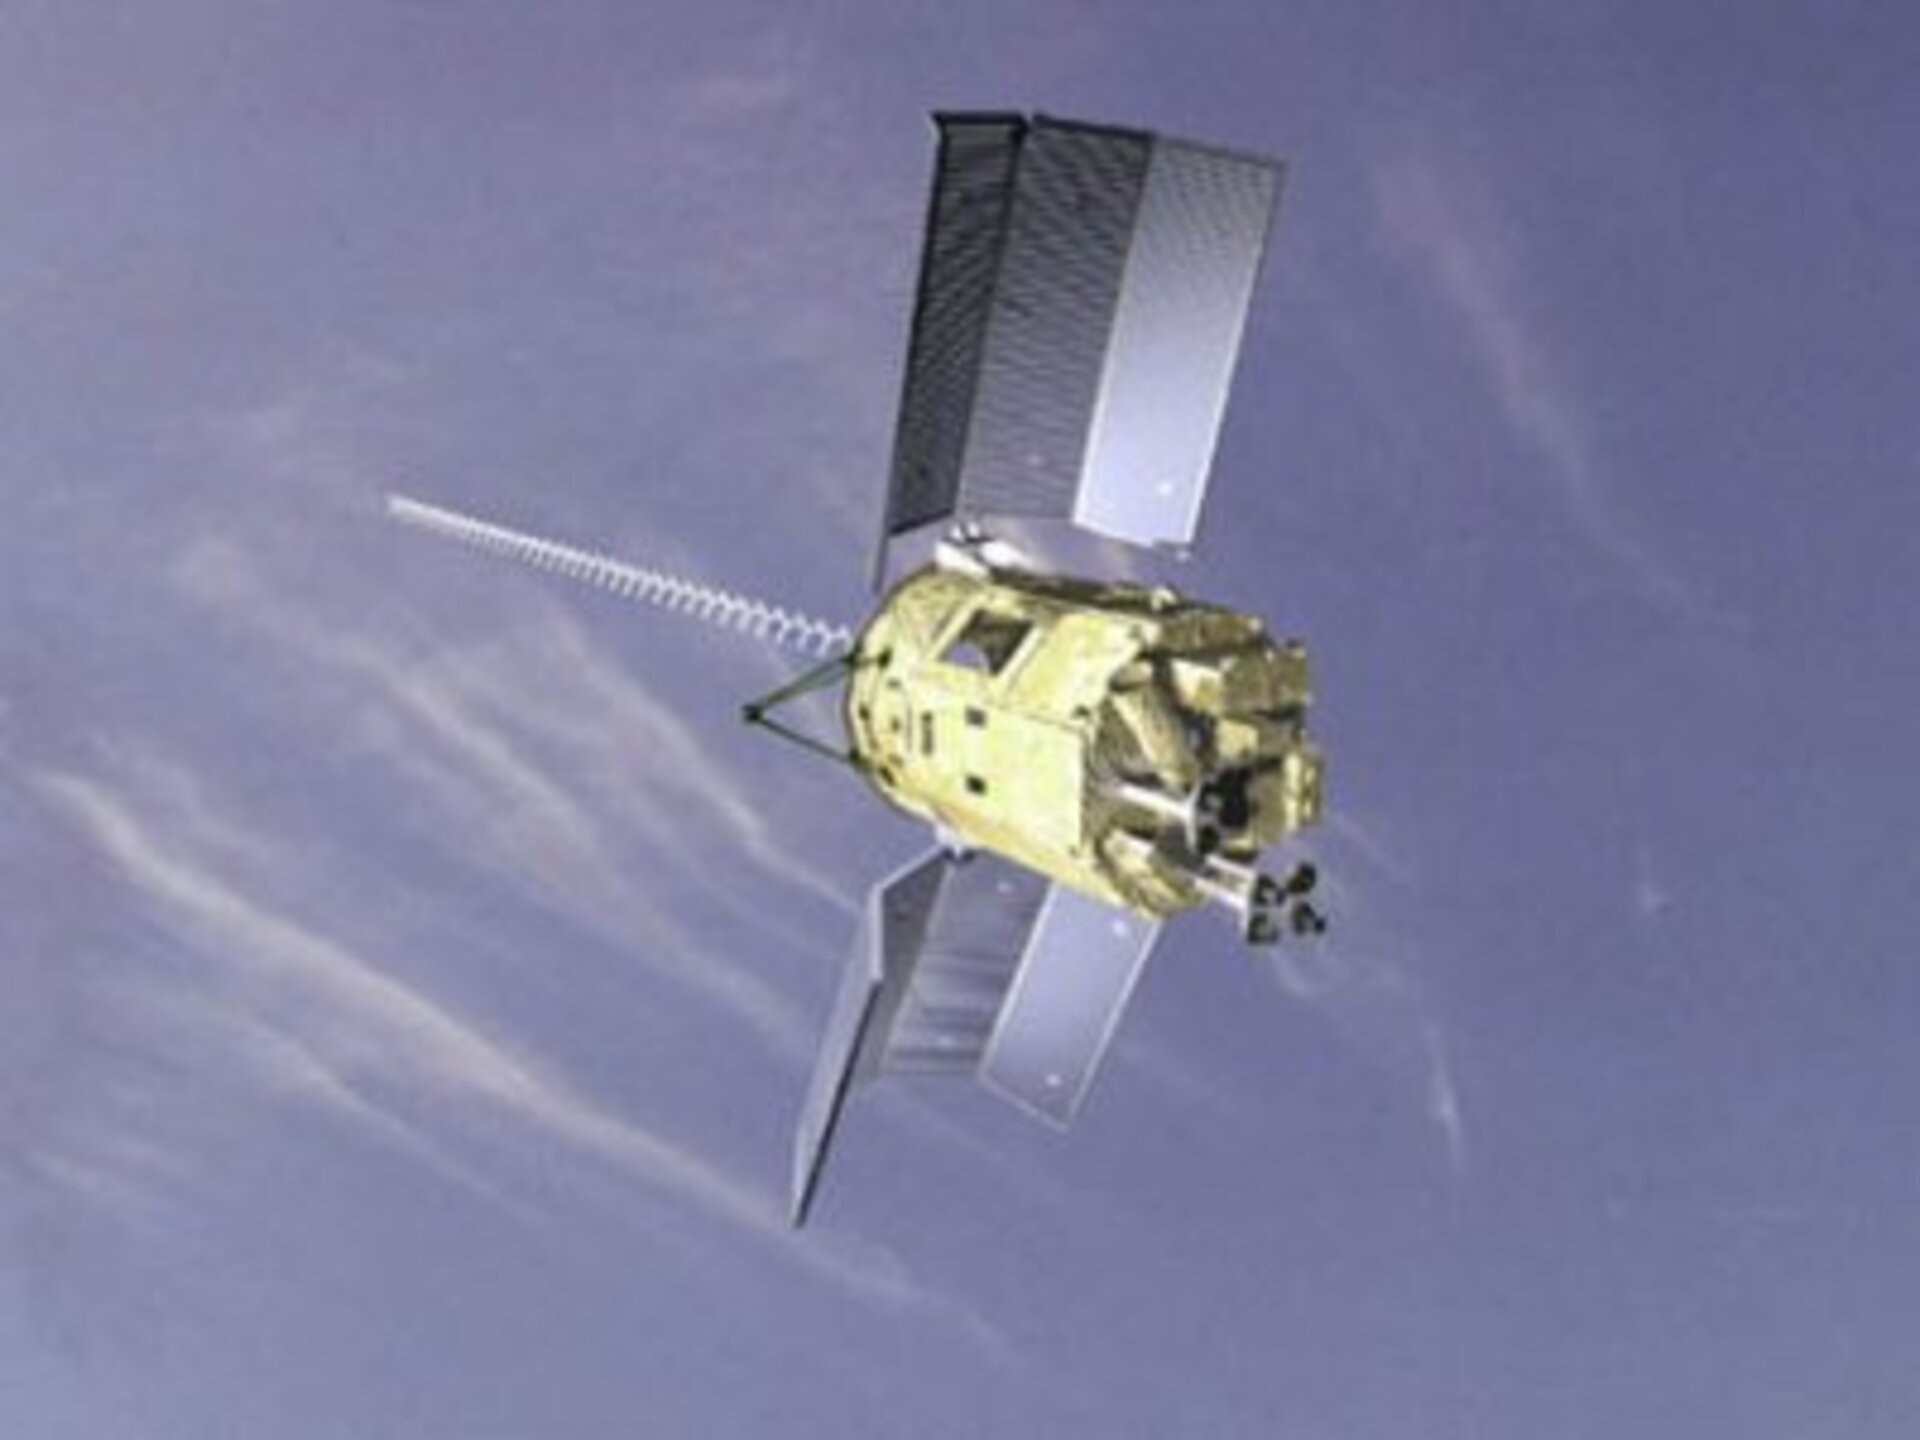 Argentina's SAC-C, operated by CONAE